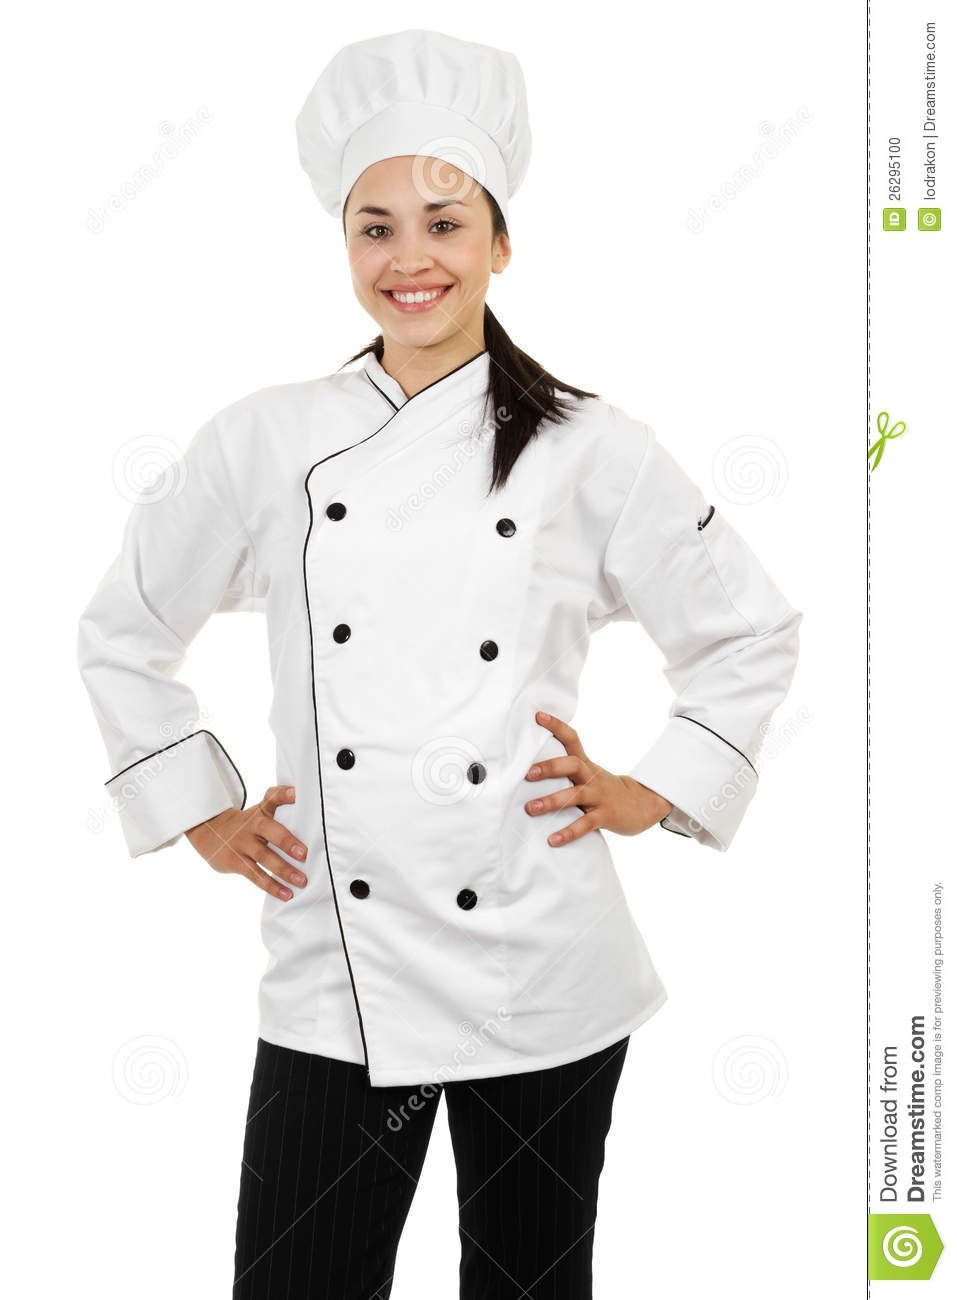 Enticing My Name A Year Chef Reaching Out To Who Want To Learn How To Make Some Easy Meals That This Is My Name A Year Chef Reaching Out To My Name Is Chef Gif My Name Is Chef Know Your Meme nice food My Name Is Chef